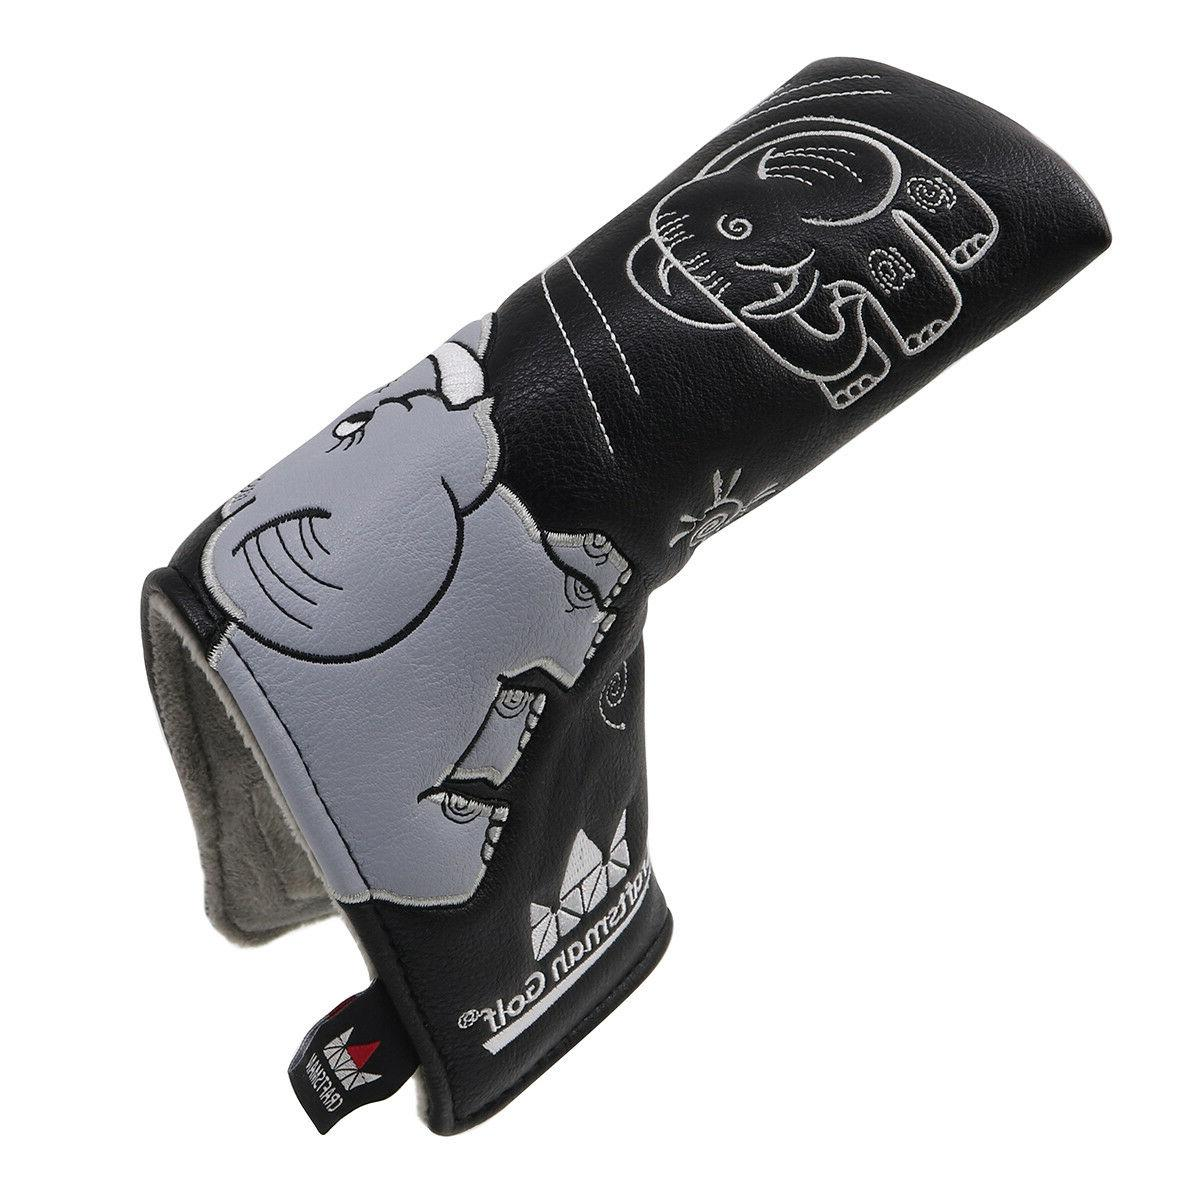 Blade Putter Cover Magnetic for Blade Mid Mallet Magetic